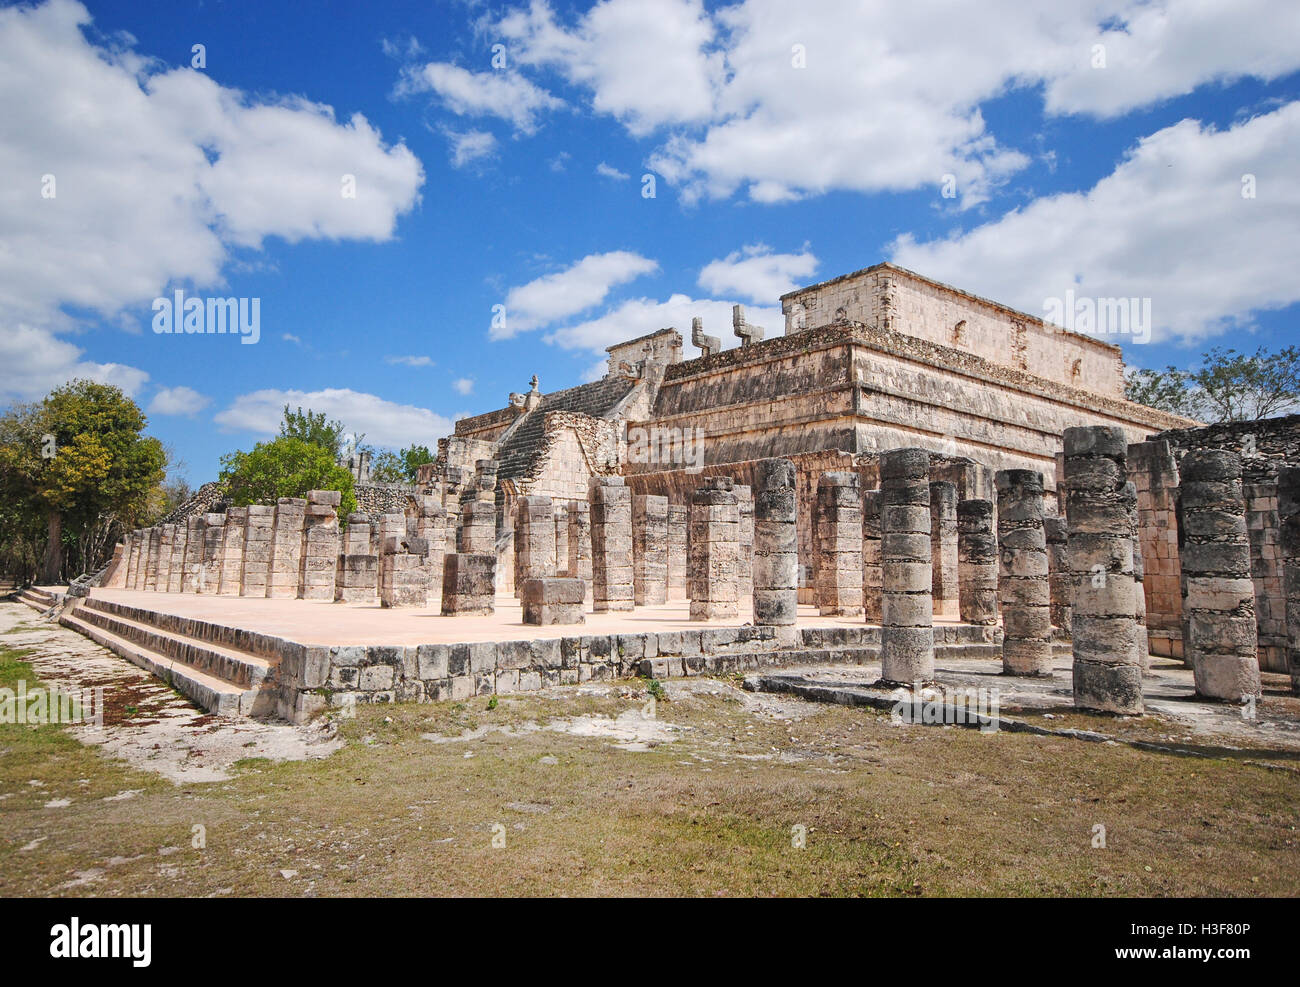 Fragment of ruins, Archaeological site in Chichen Itza, Mexico - Stock Image